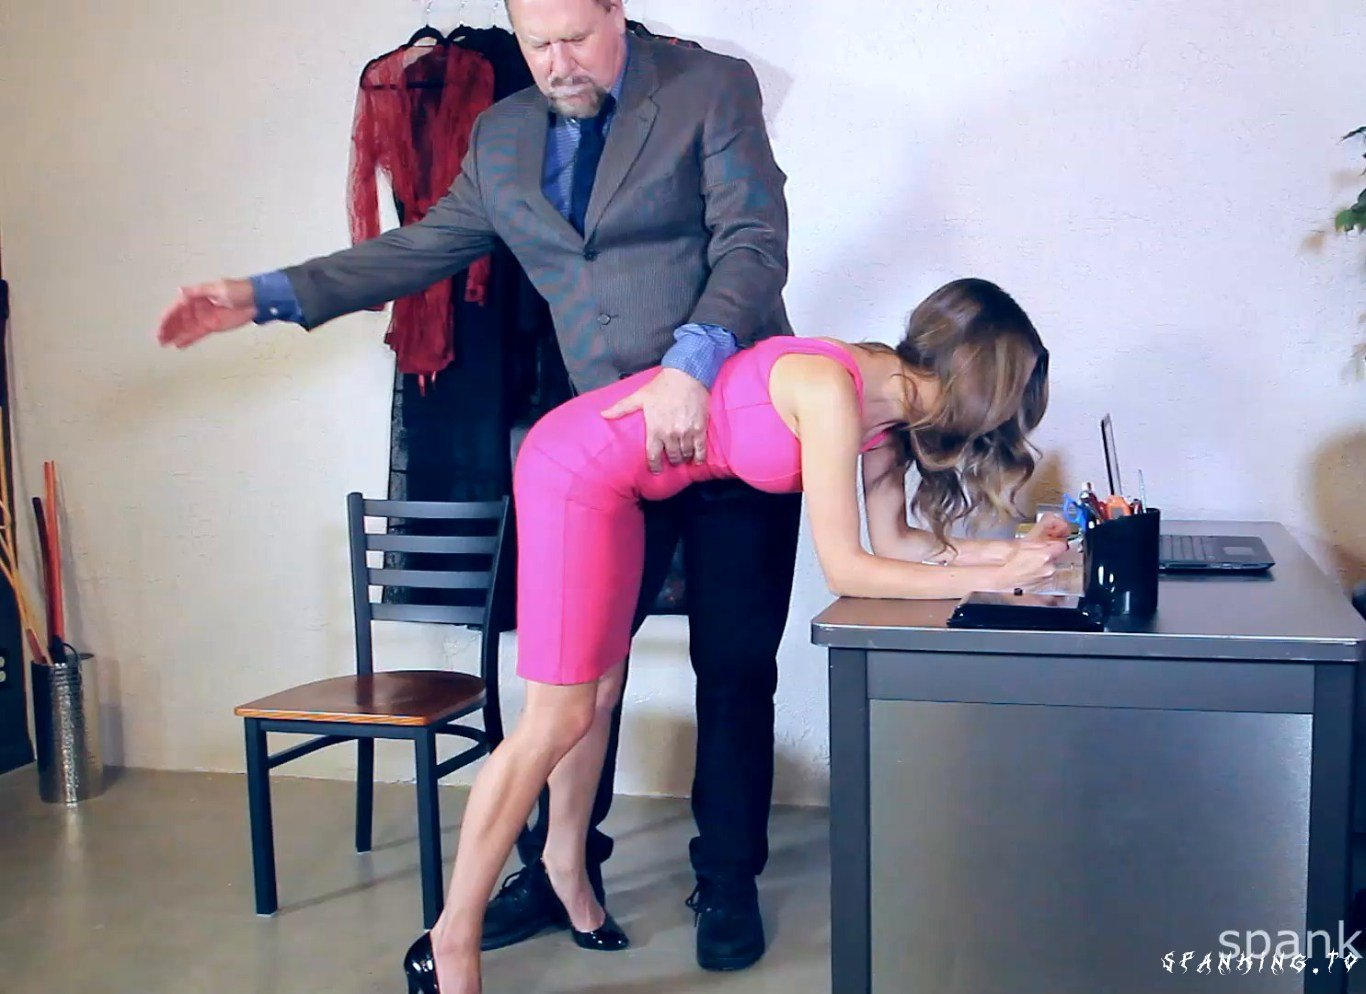 Chrissy Maried Punished By Boss Day 1 - Spankedcallgirls - Full HD